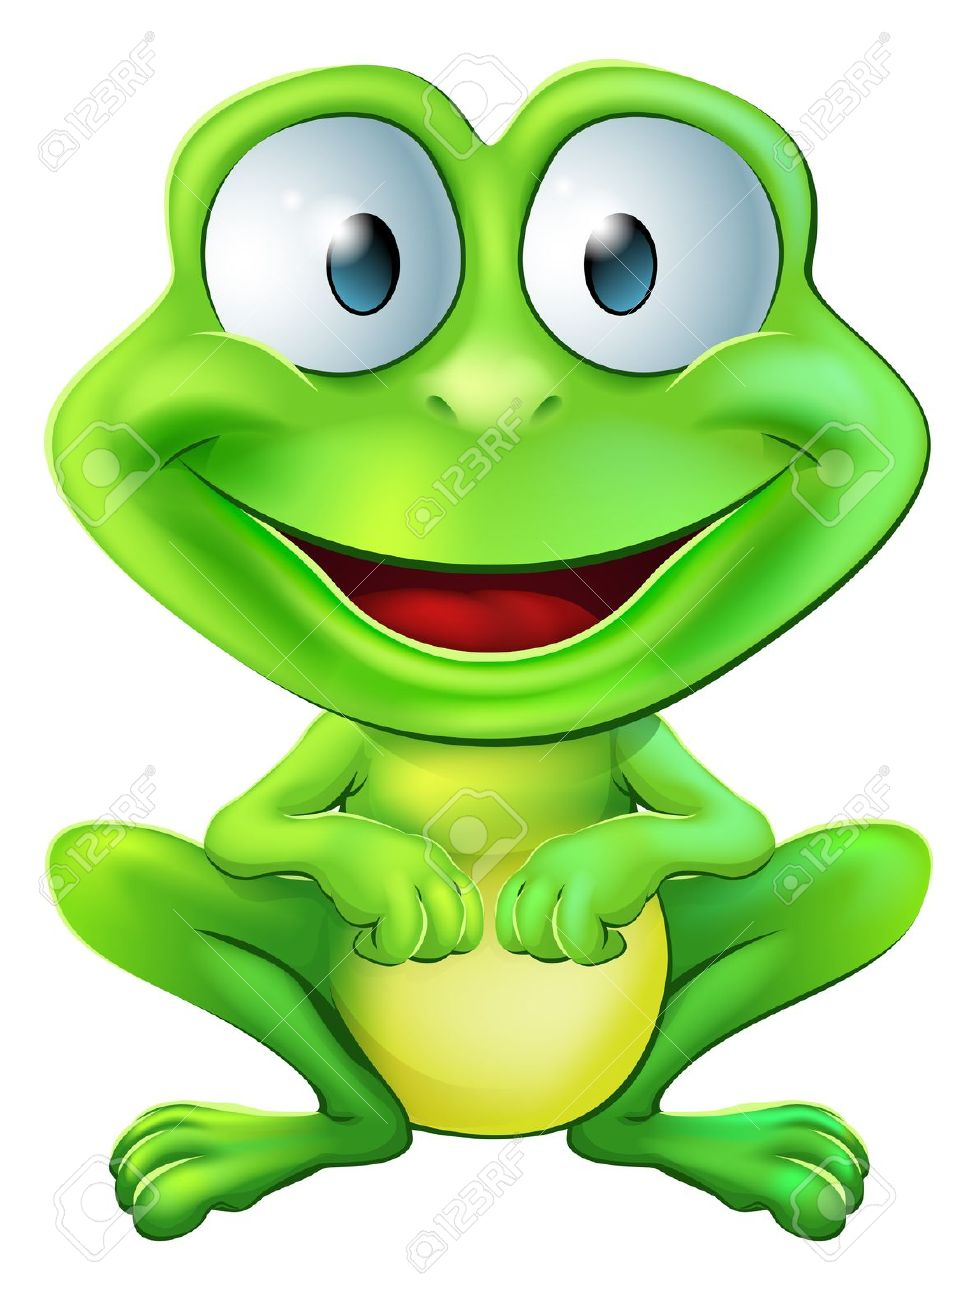 Cartoon Frog Stock Photos. Royalty Free Ca #55403.